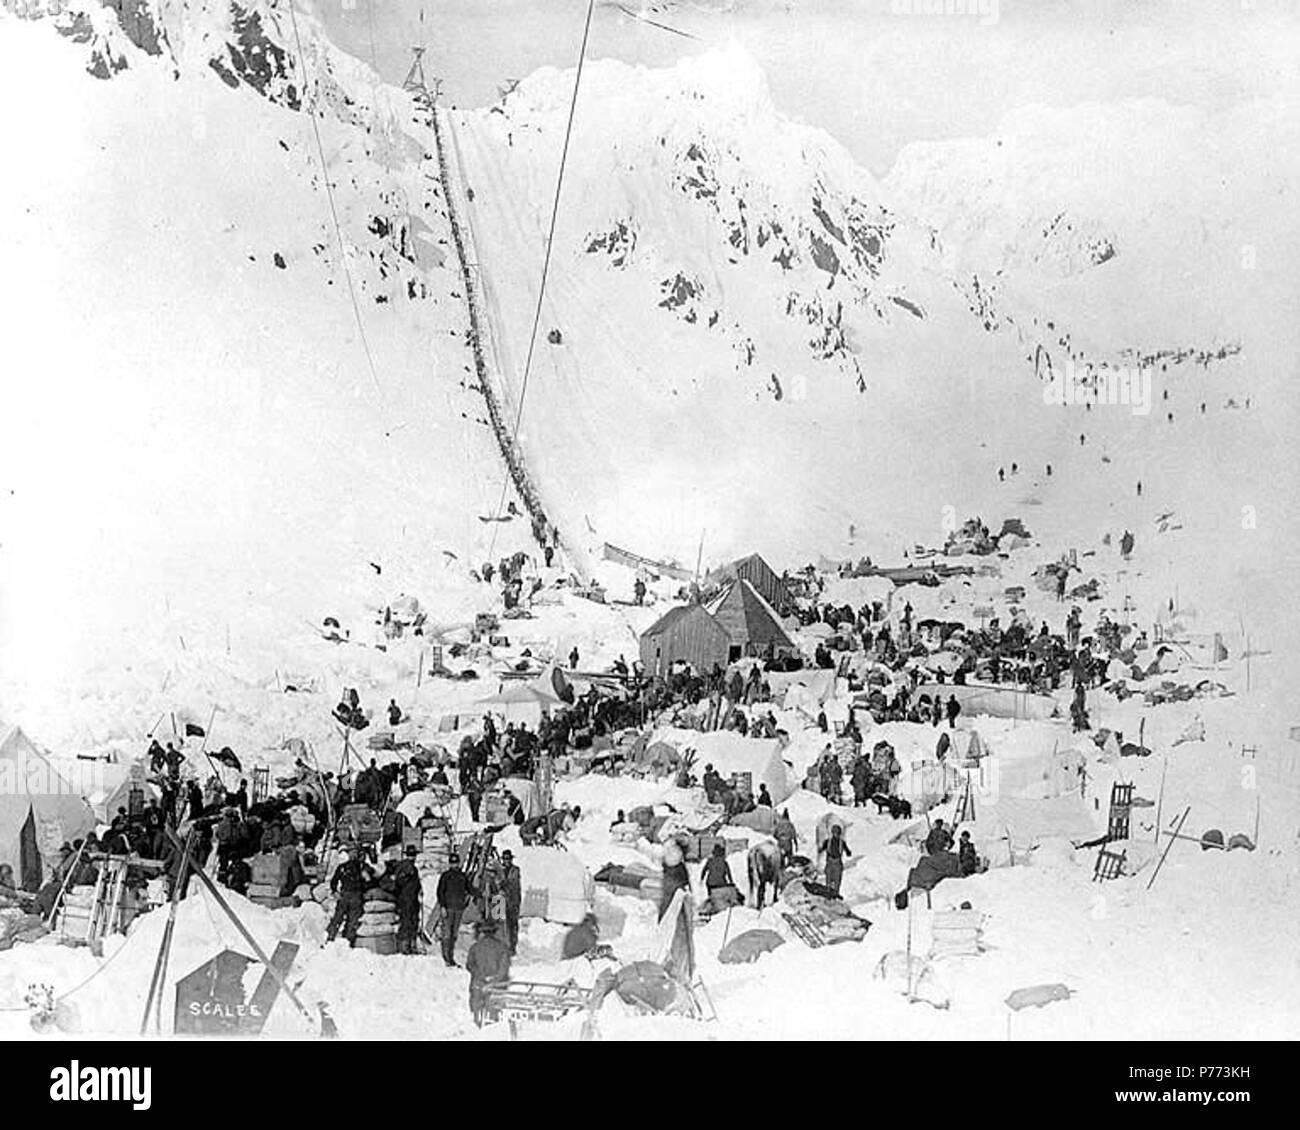 . English: Klondikers with supplies at The Scales preparing to ascend to the summit of Chilkoot Pass, Alaska, March 1898. English: Shows boat at the base of line of packers in the background . Caption on image: 'Scales and summit of Chilkoot Pass March' Klondike Gold Rush. Subjects (LCTGM): Tents--Alaska--Chilkoot Pass; Sleds--Alaska--Chilkoot Pass; Canoes--Alaska--Chilkoot Pass Subjects (LCSH): Chilkoot Trail; Trails--Alaska; Chilkoot Pass (Alaska); Mountain passes--Alaska  . 1898 7 Klondikers with supplies at The Scales preparing to ascend to the summit of Chilkoot Pass, Alaska, March 1898 ( - Stock Image